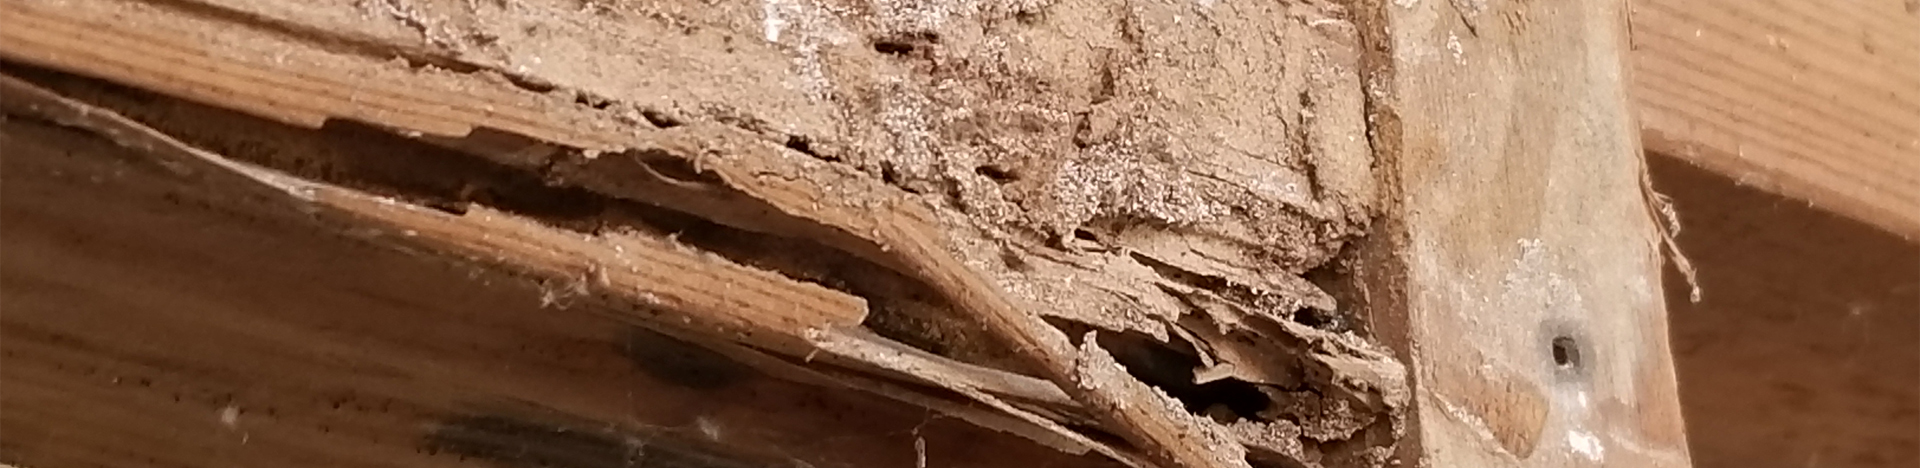 Questions about Termites in Phoenix